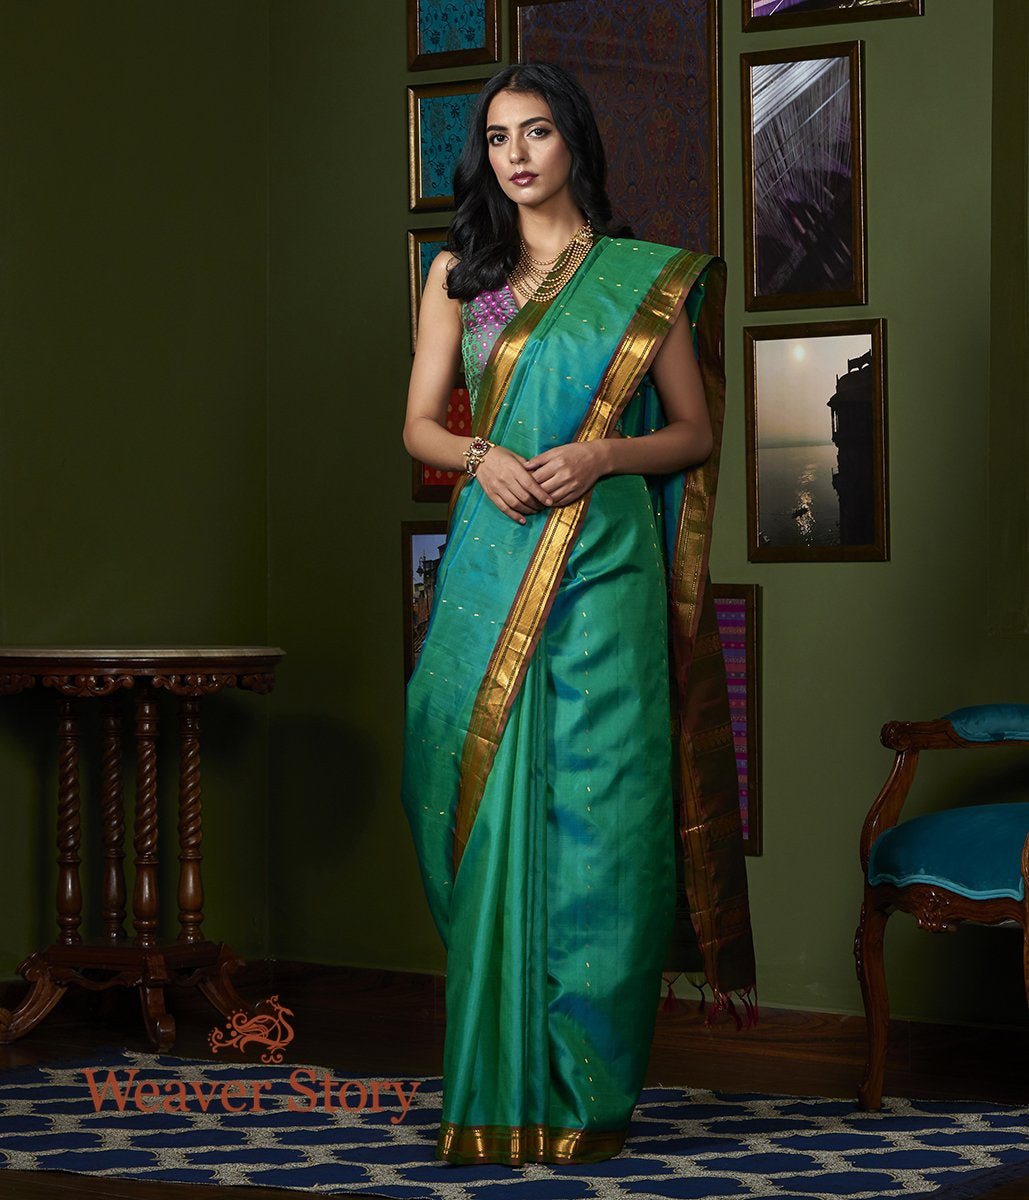 Handwoven Teal Green Kanjivaram Saree with Mahroon and Gold Zari Border